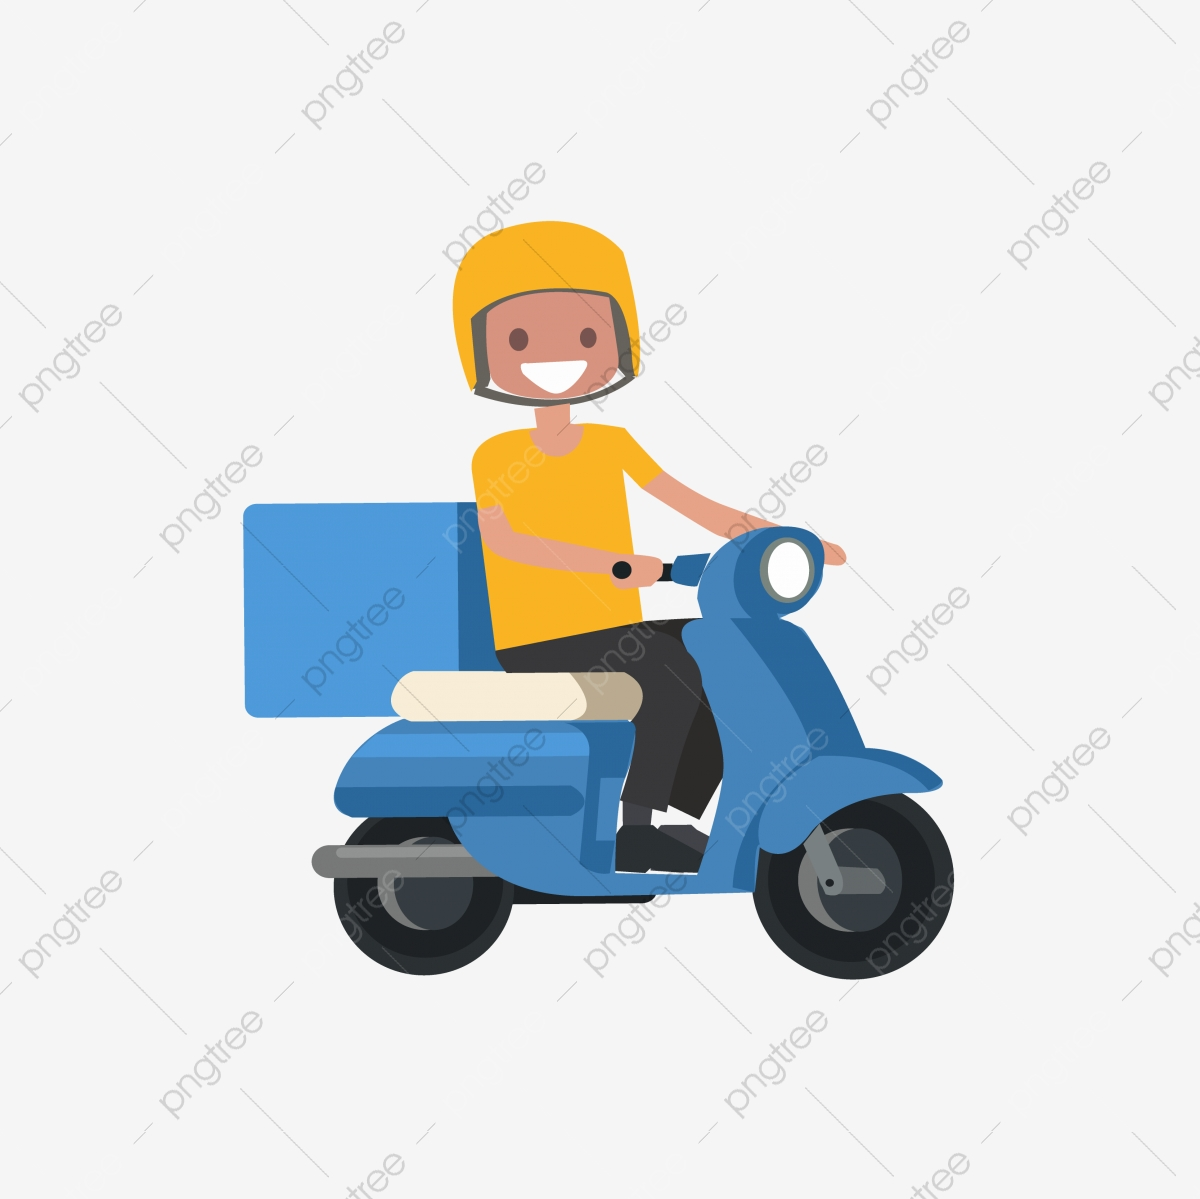 young boy riding an blue delivery scooter vector man blue delivery png and vector with transparent background for free download https pngtree com freepng young boy riding an blue delivery scooter vector 5366574 html